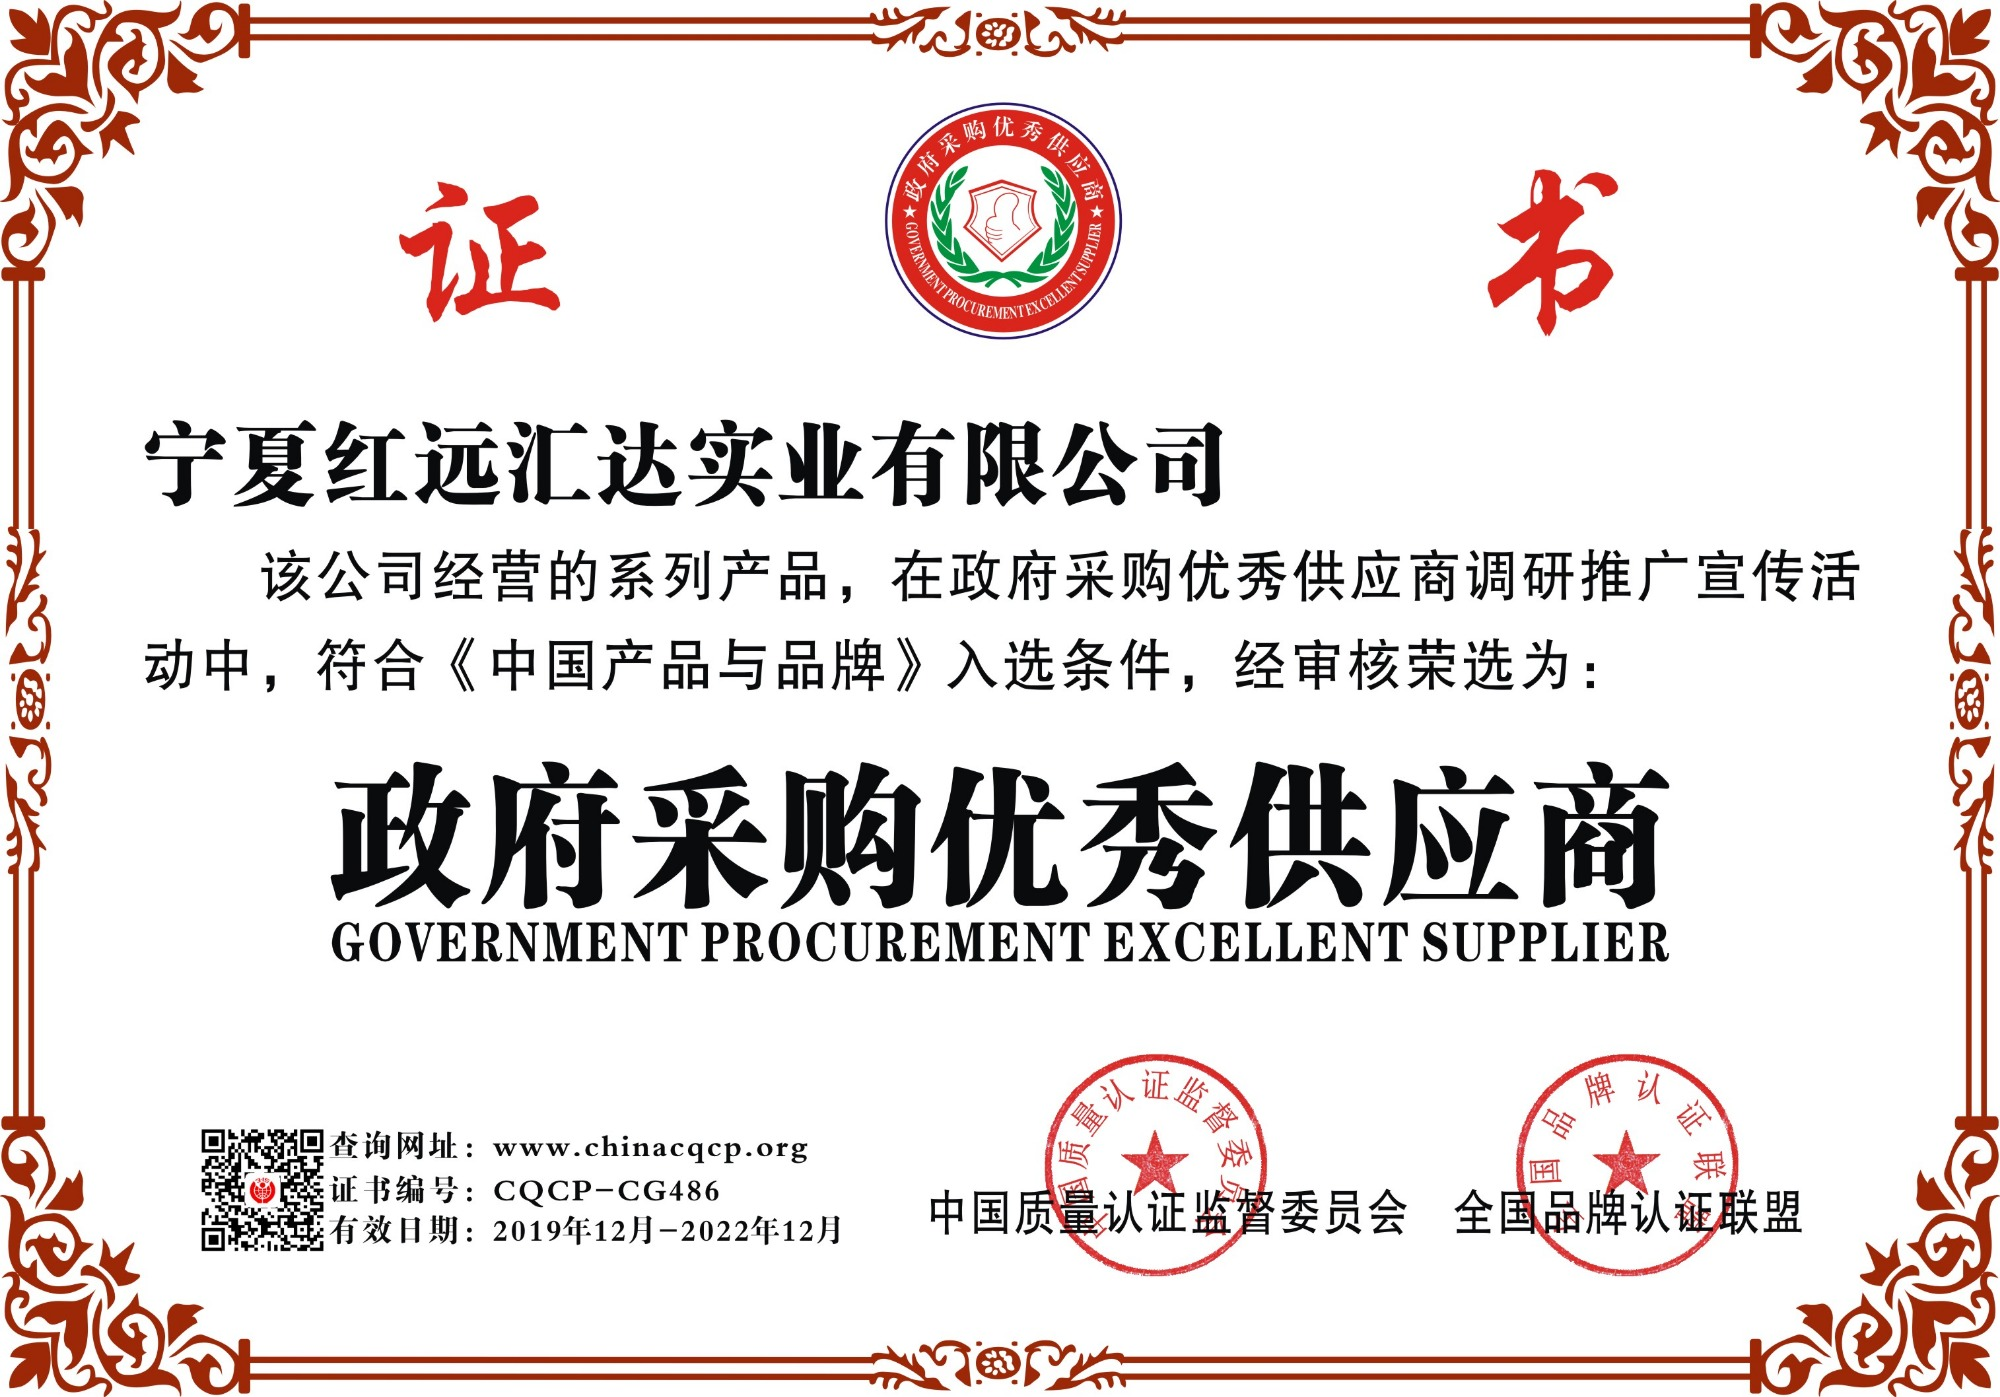 Warmly celebrate Ningxia Hyhdcarbon award of 'Government Procurement Excellent Supplier' honor